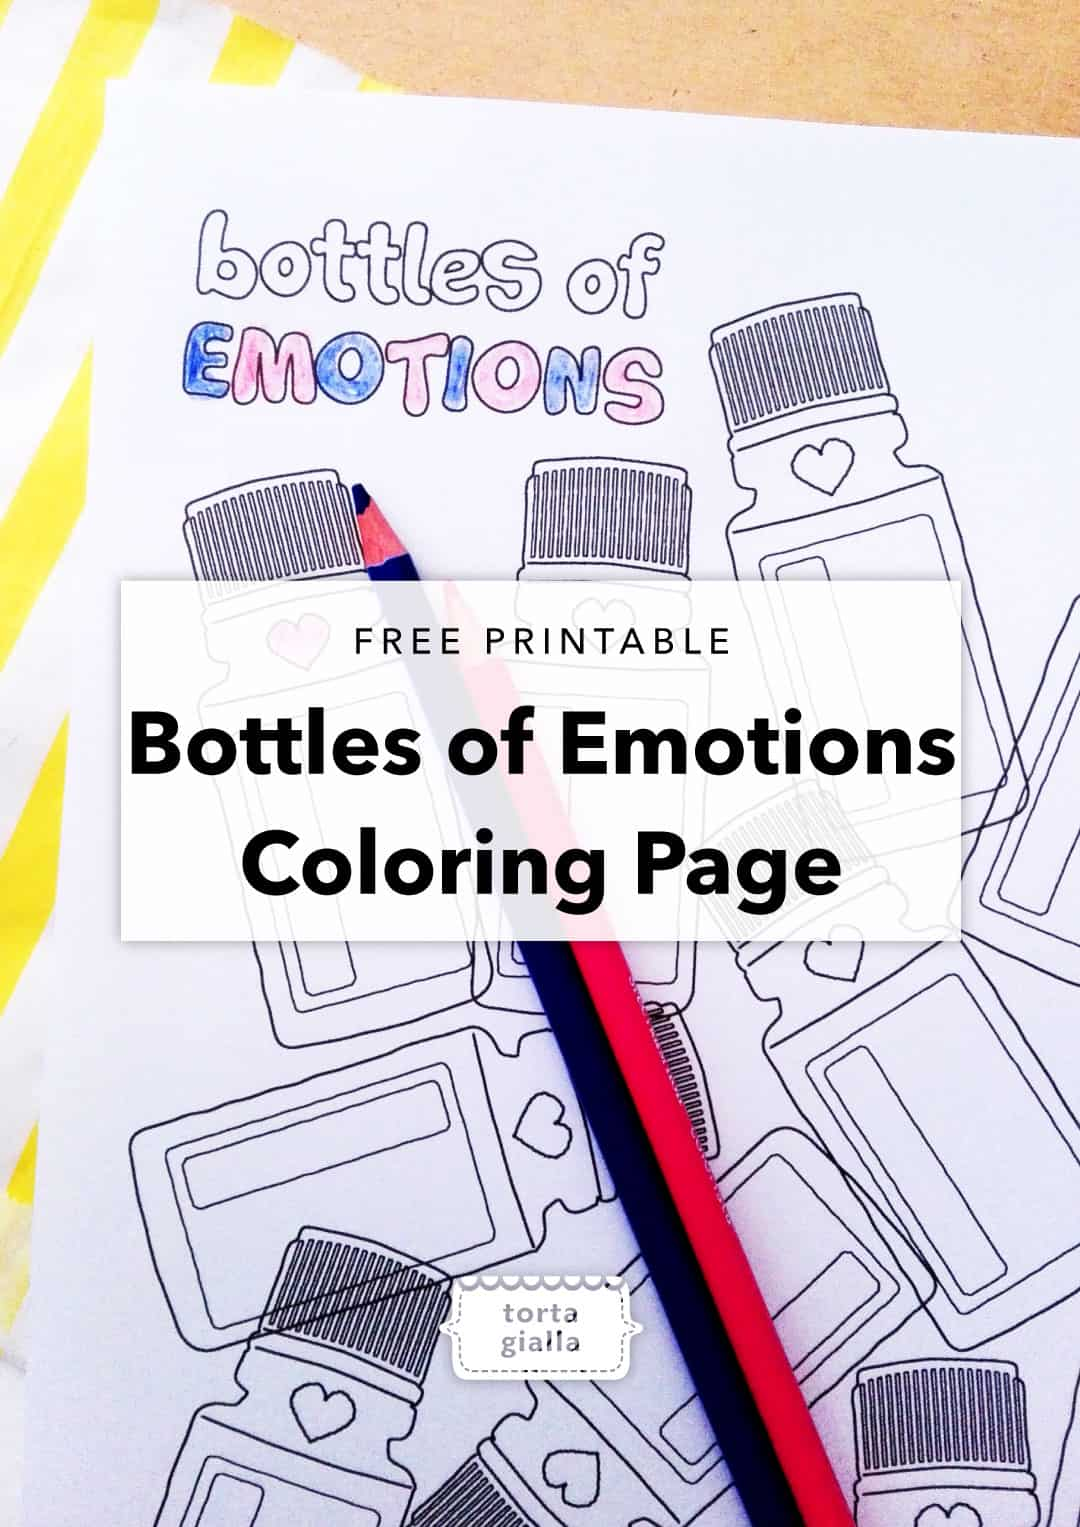 bottles of emotions coloring page // free printable